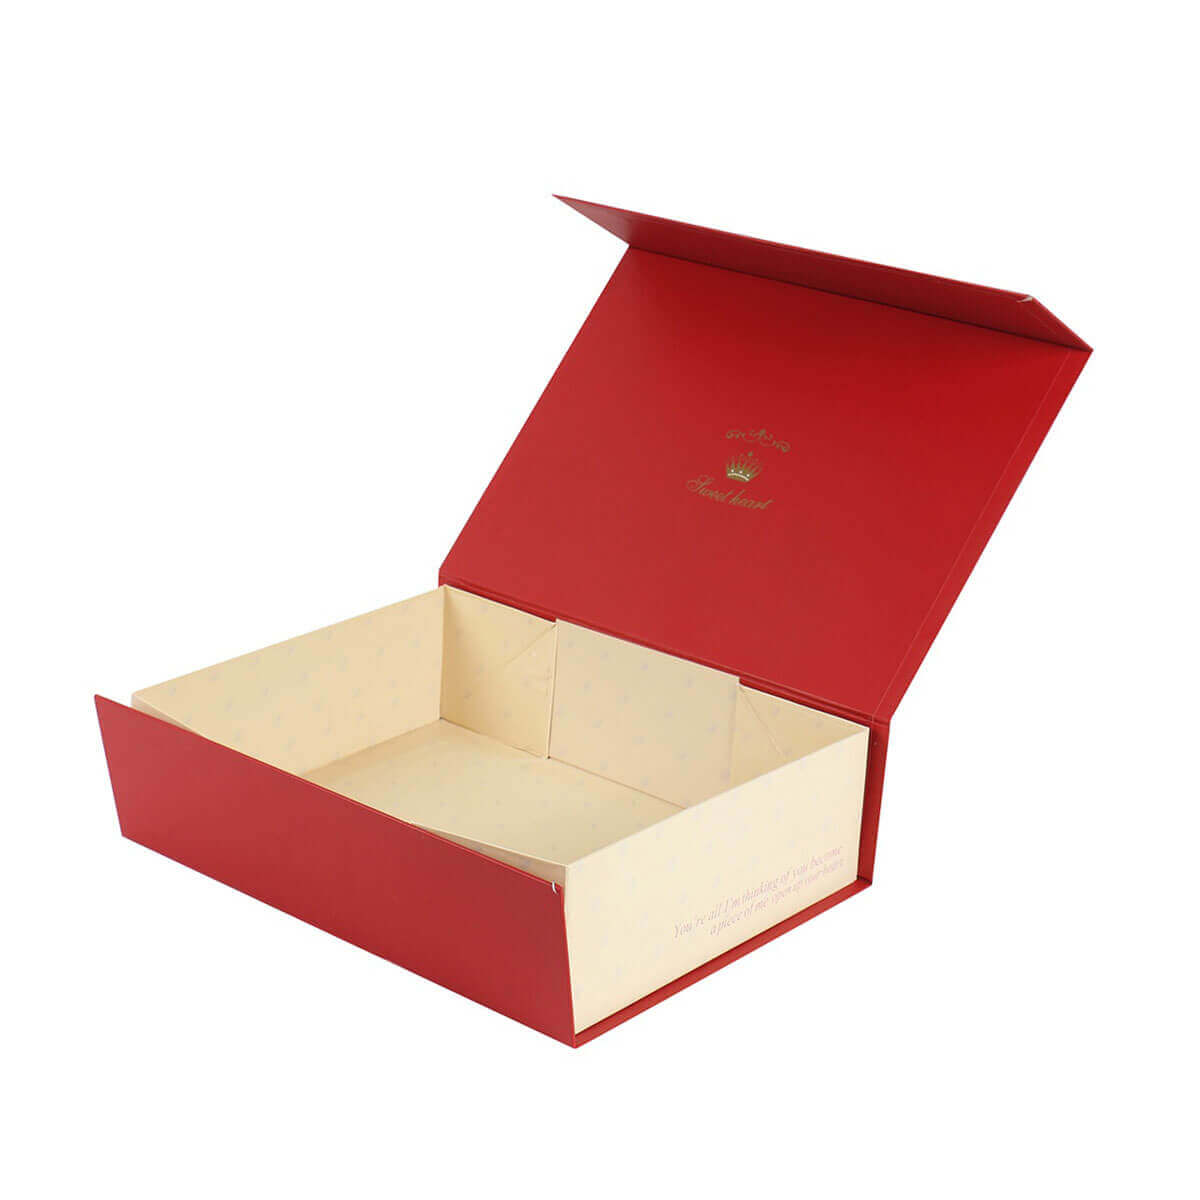 Folding Boxes for Gifts and Their Impacts on Upraising a Brand in Market